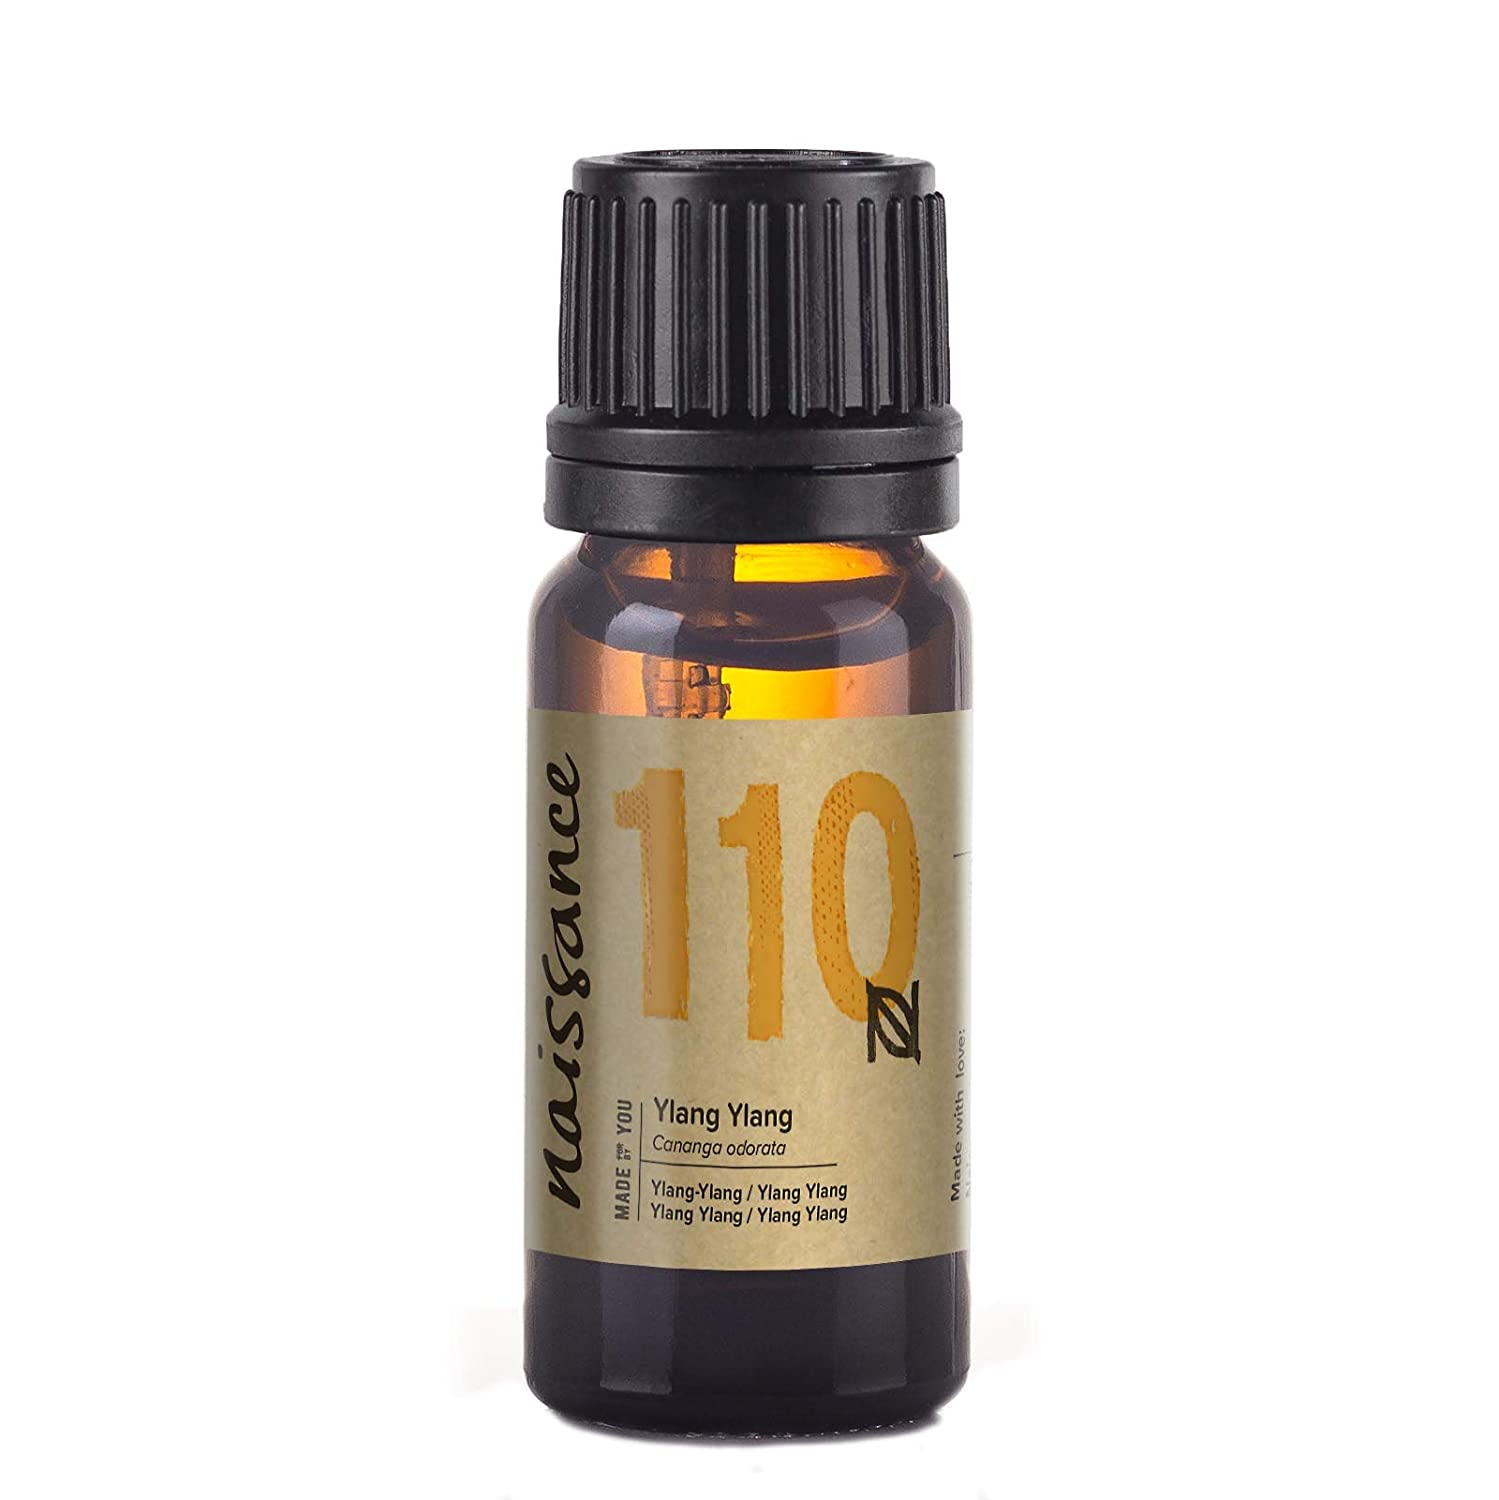 Naissance Ylang Ylang Essential Oil (no. 110) 10ml - Pure, Natural, Cruelty Free, Steam Distilled and Undiluted - for Use in Aromatherapy, Massage Blend & Diffusers